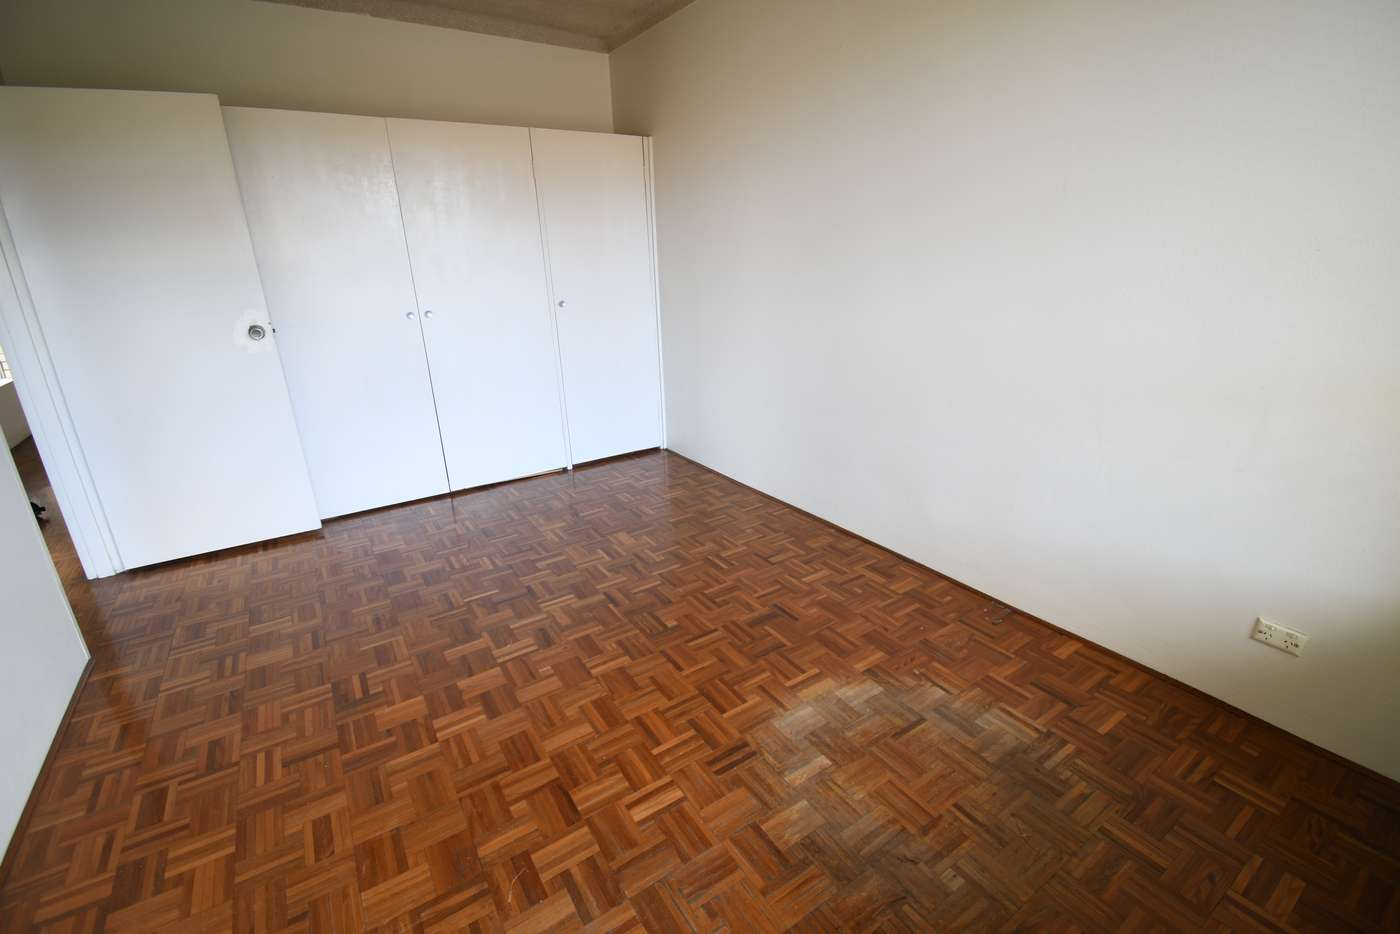 Sixth view of Homely apartment listing, 7/29-31 Houston Road, Kensington NSW 2033